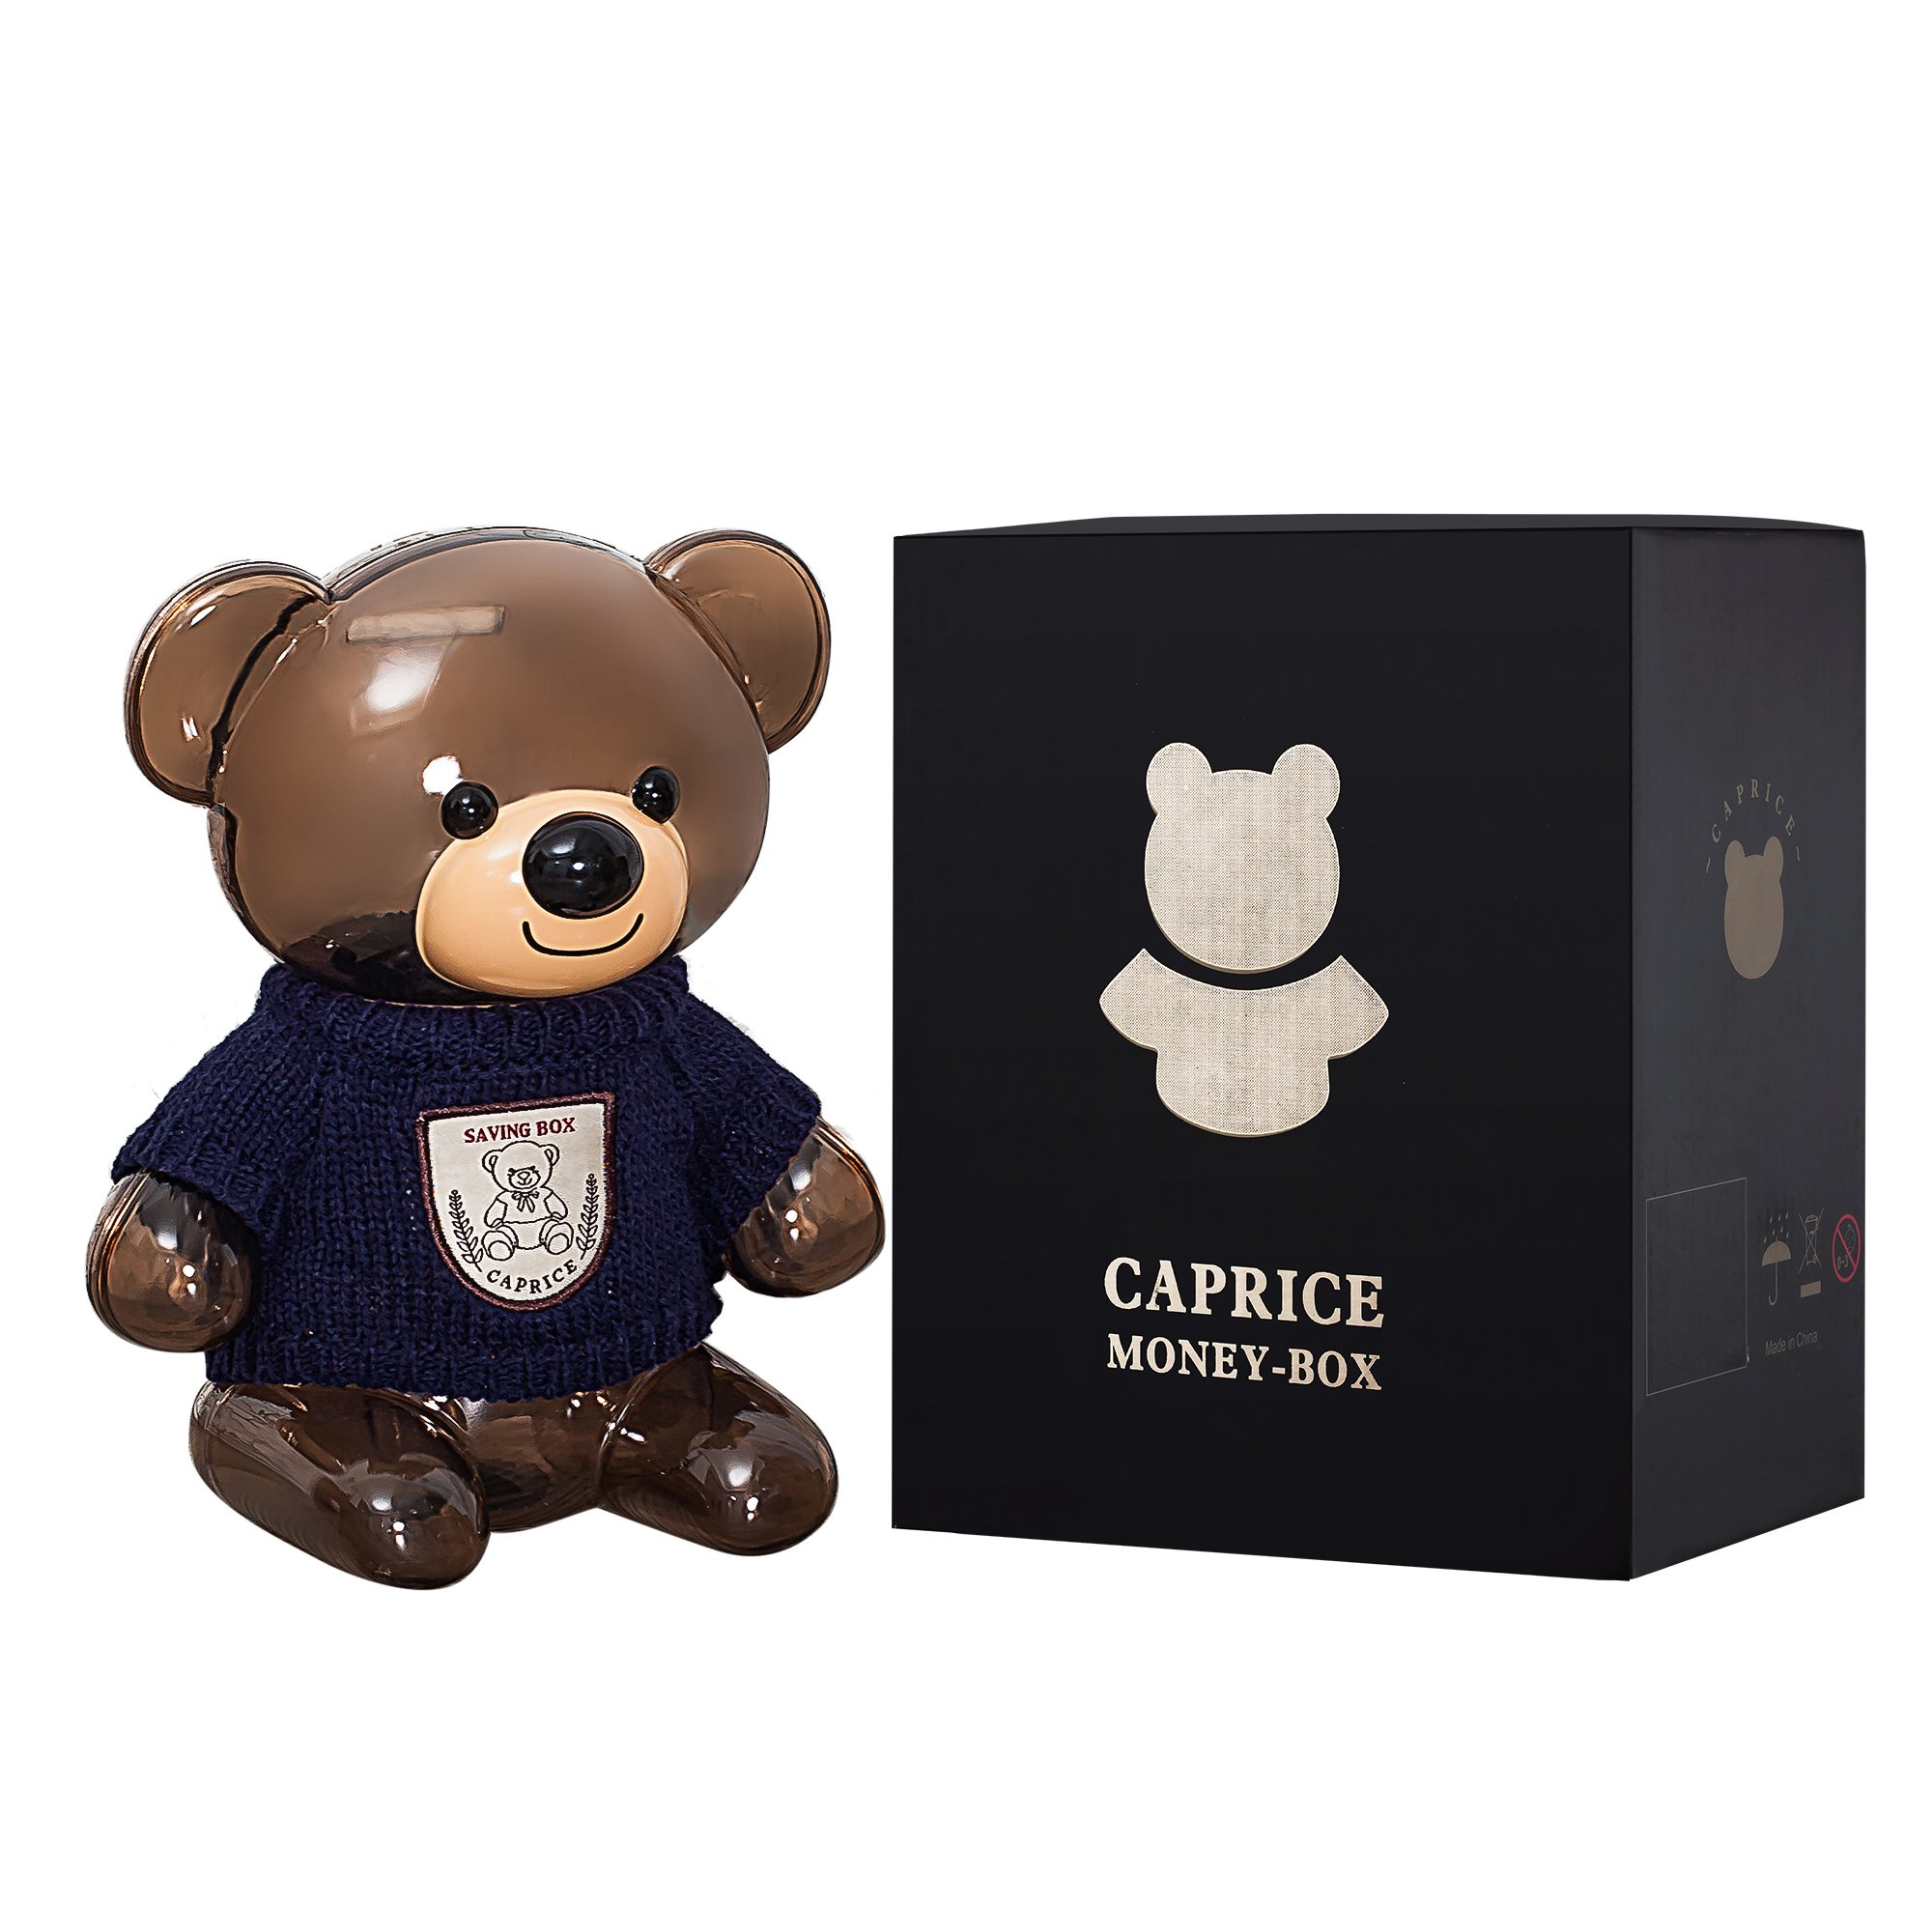 Msicyness Classic Bear Piggy Bank - Cute Cartoon Saving Box for Kids Mini ATM with Knit Clothes Decor Coin Toy Banks Save Pot Money Boxes(Transparent)